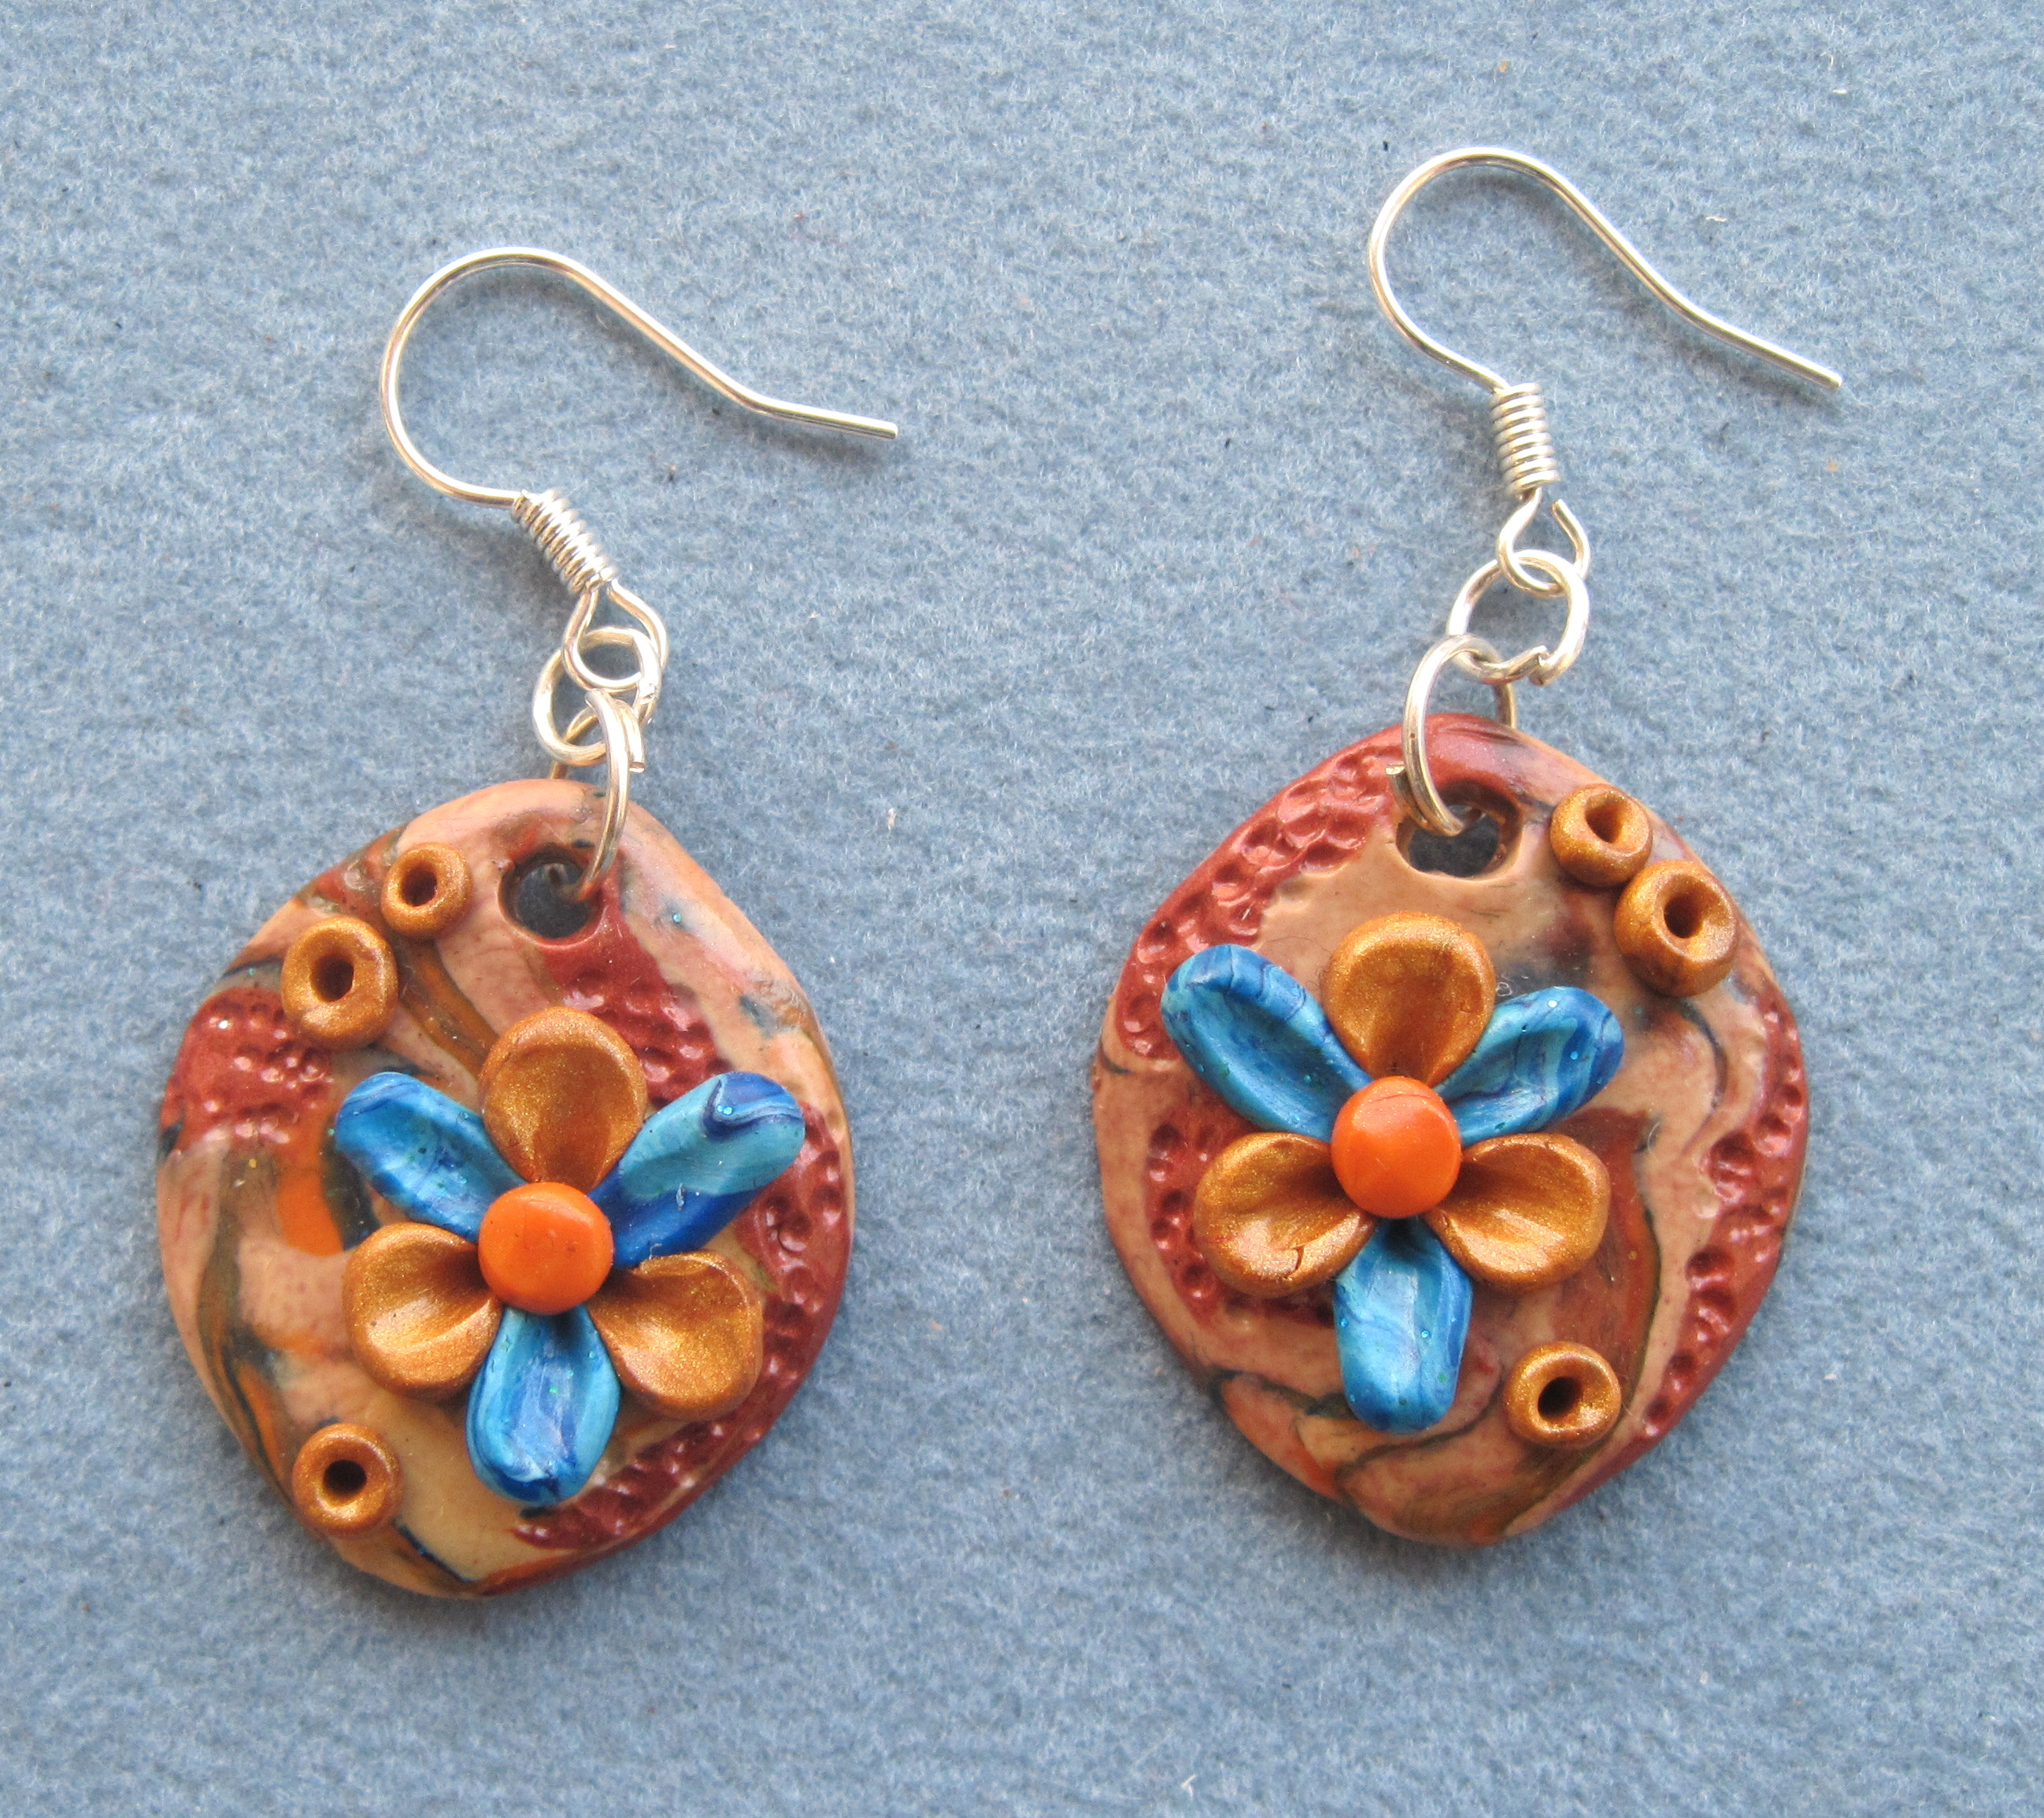 Earrings In Stylish Design Unique Handmade Fimo Ooak